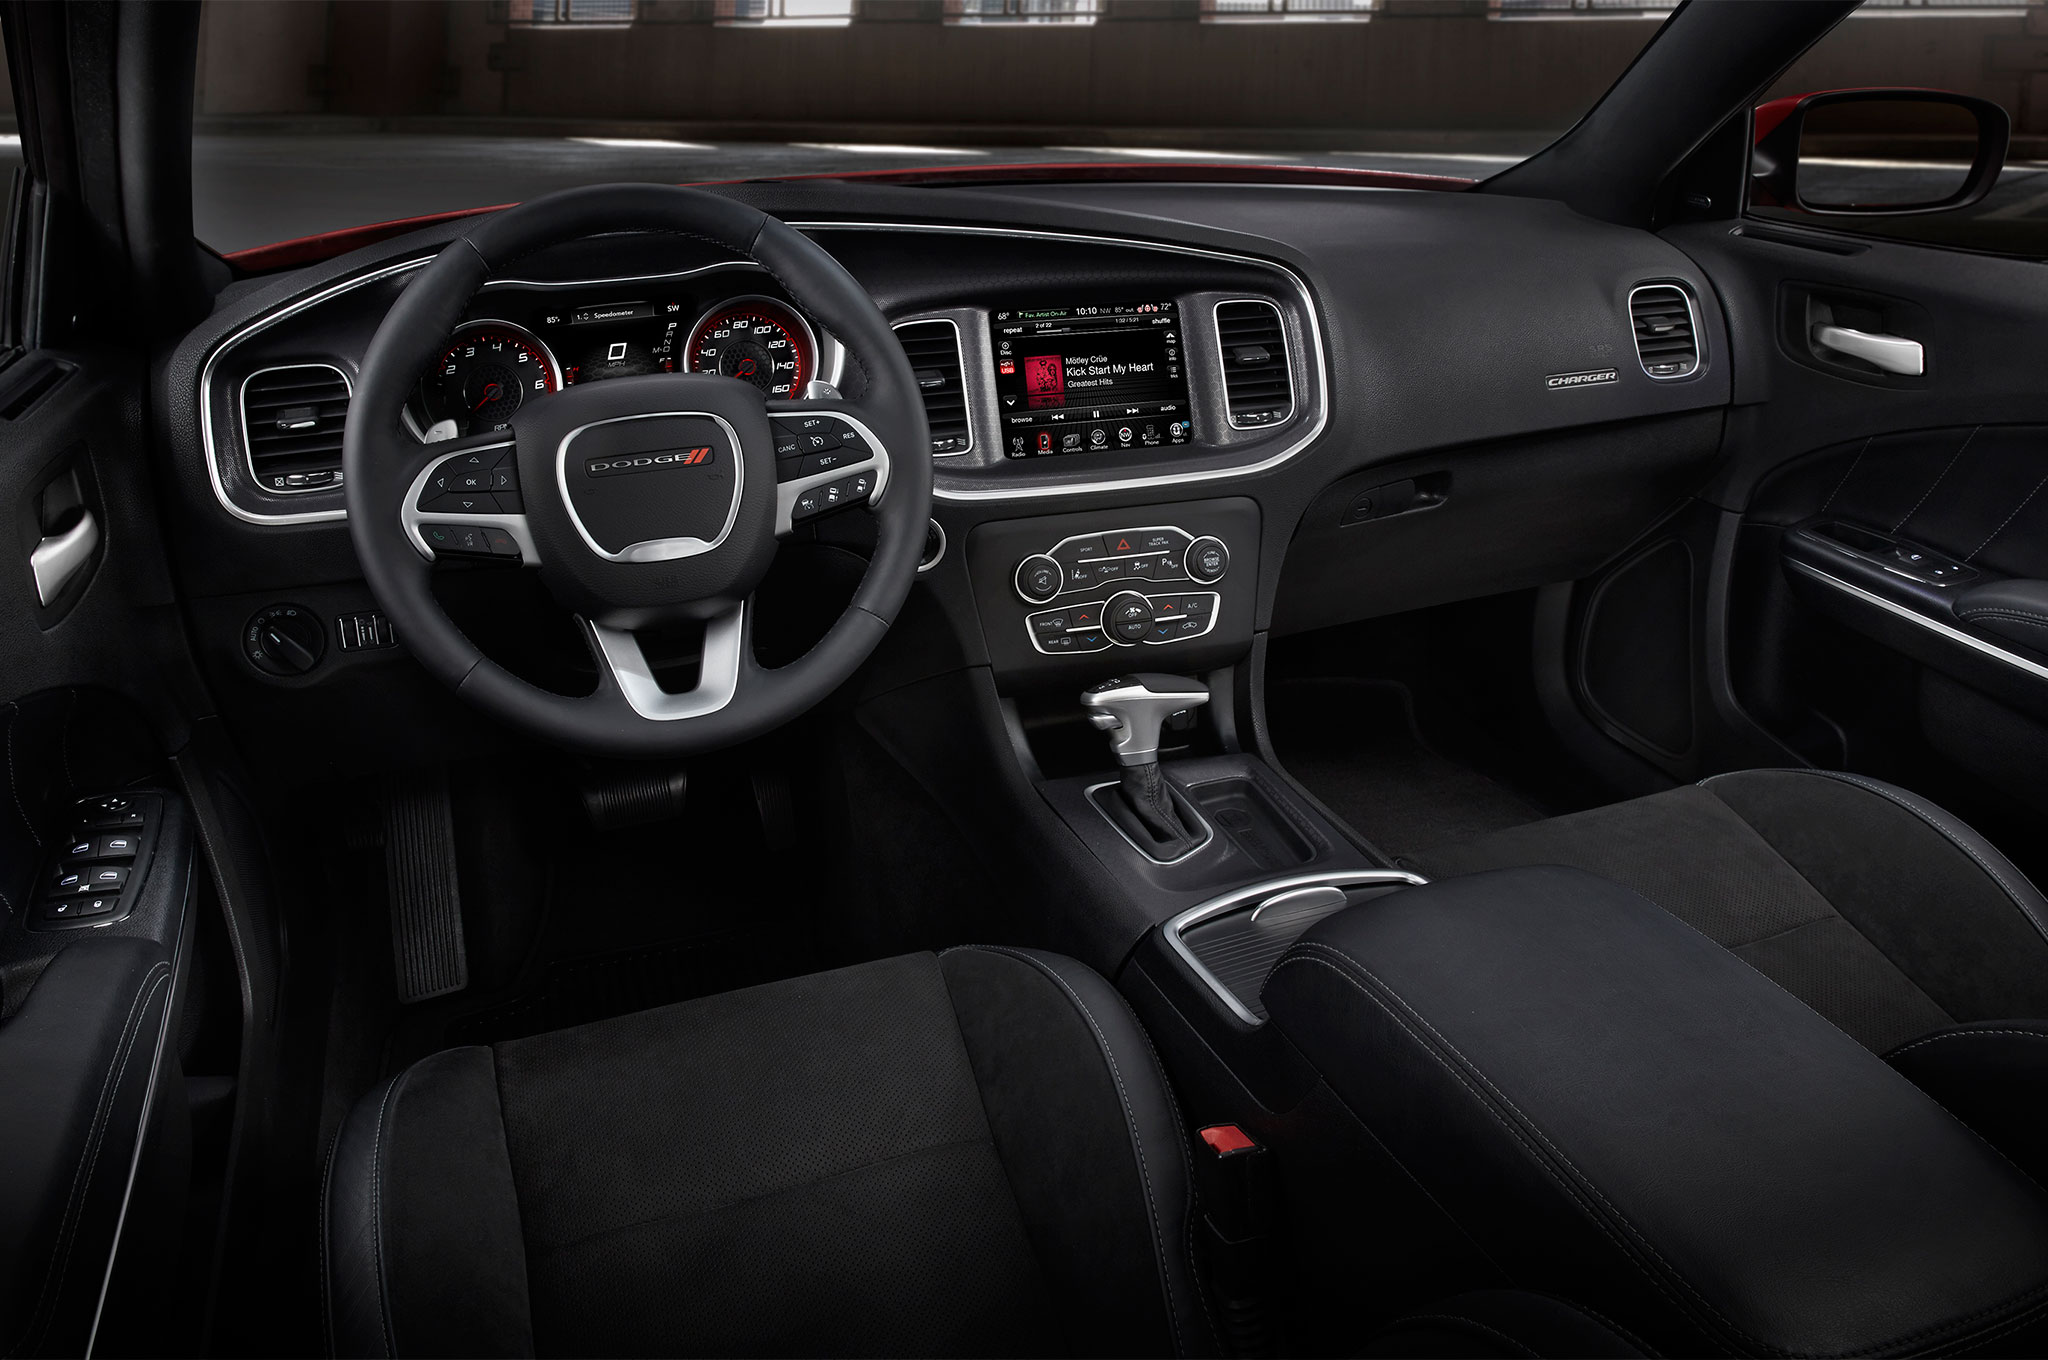 2015 dodge charger waldorf md - Dodge Charger 2015 Exterior